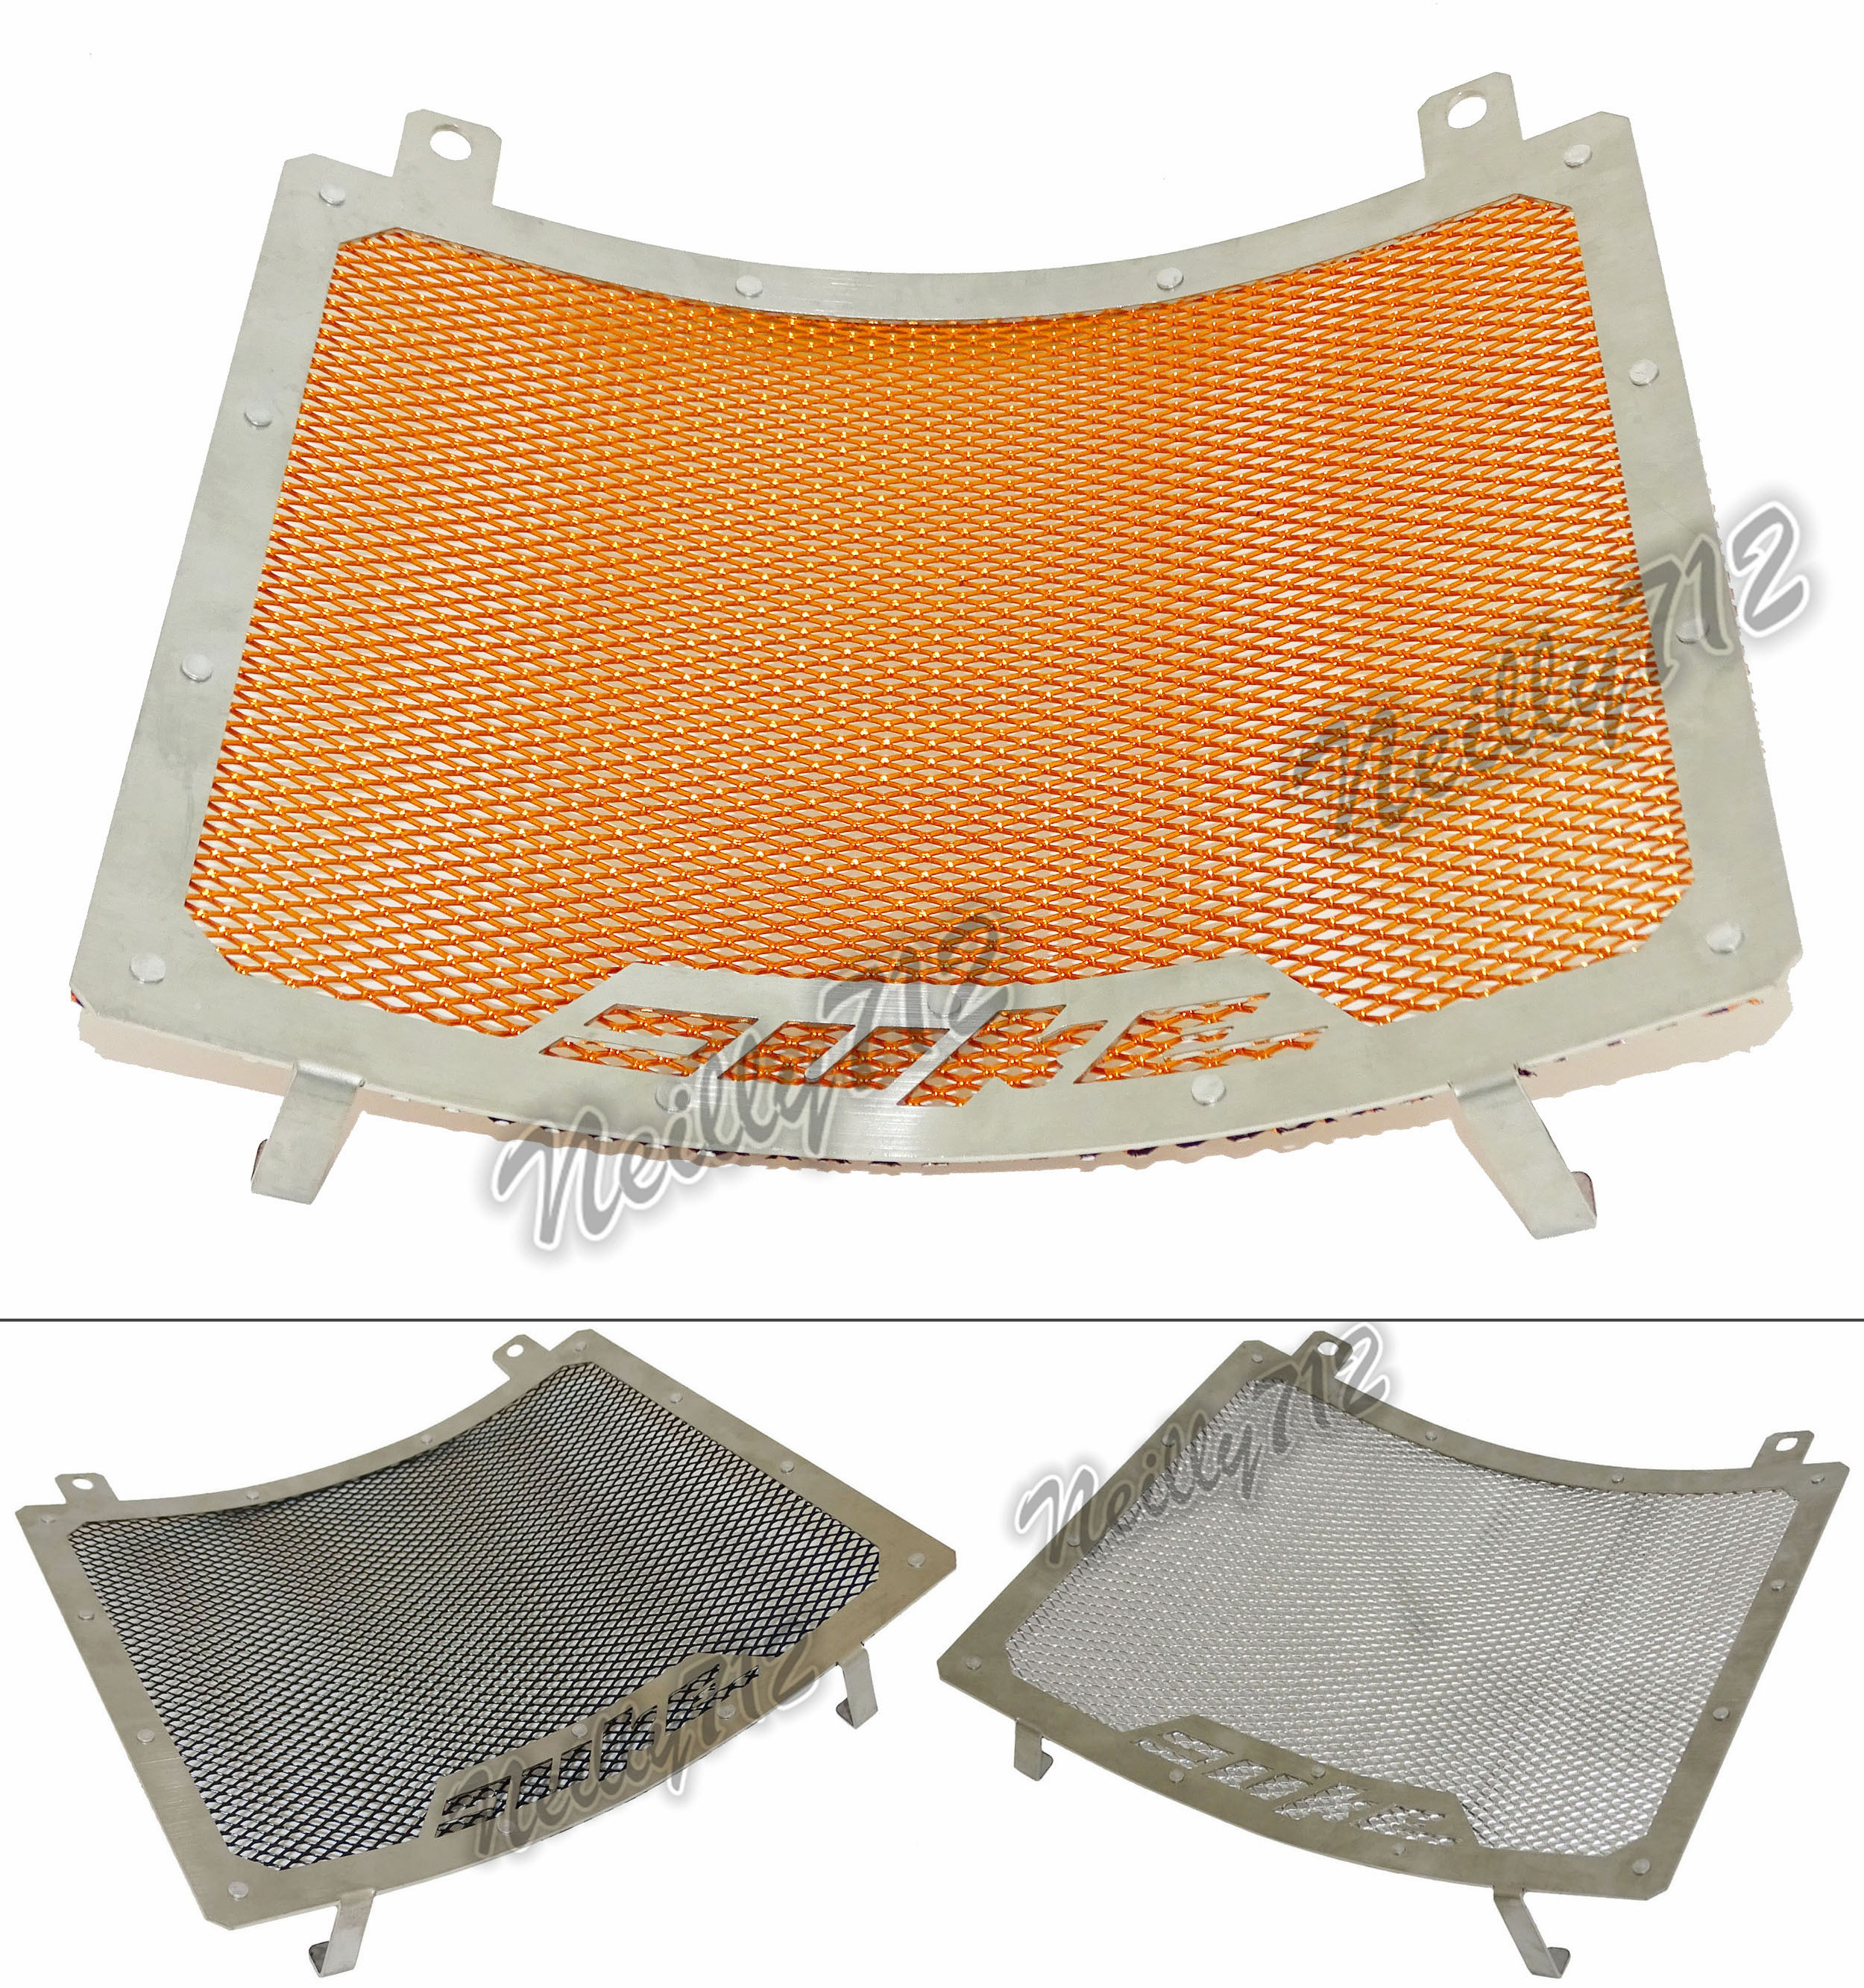 Motorcycle Radiator Protective Cover Grill Guard Grille Protector For KTM Duke 690 2012 2013 2014 2015 2016 2017 arashi radiator grille protective cover grill guard protector for suzuki gsxr1000 2009 2010 2011 2012 2013 2014 2015 2016